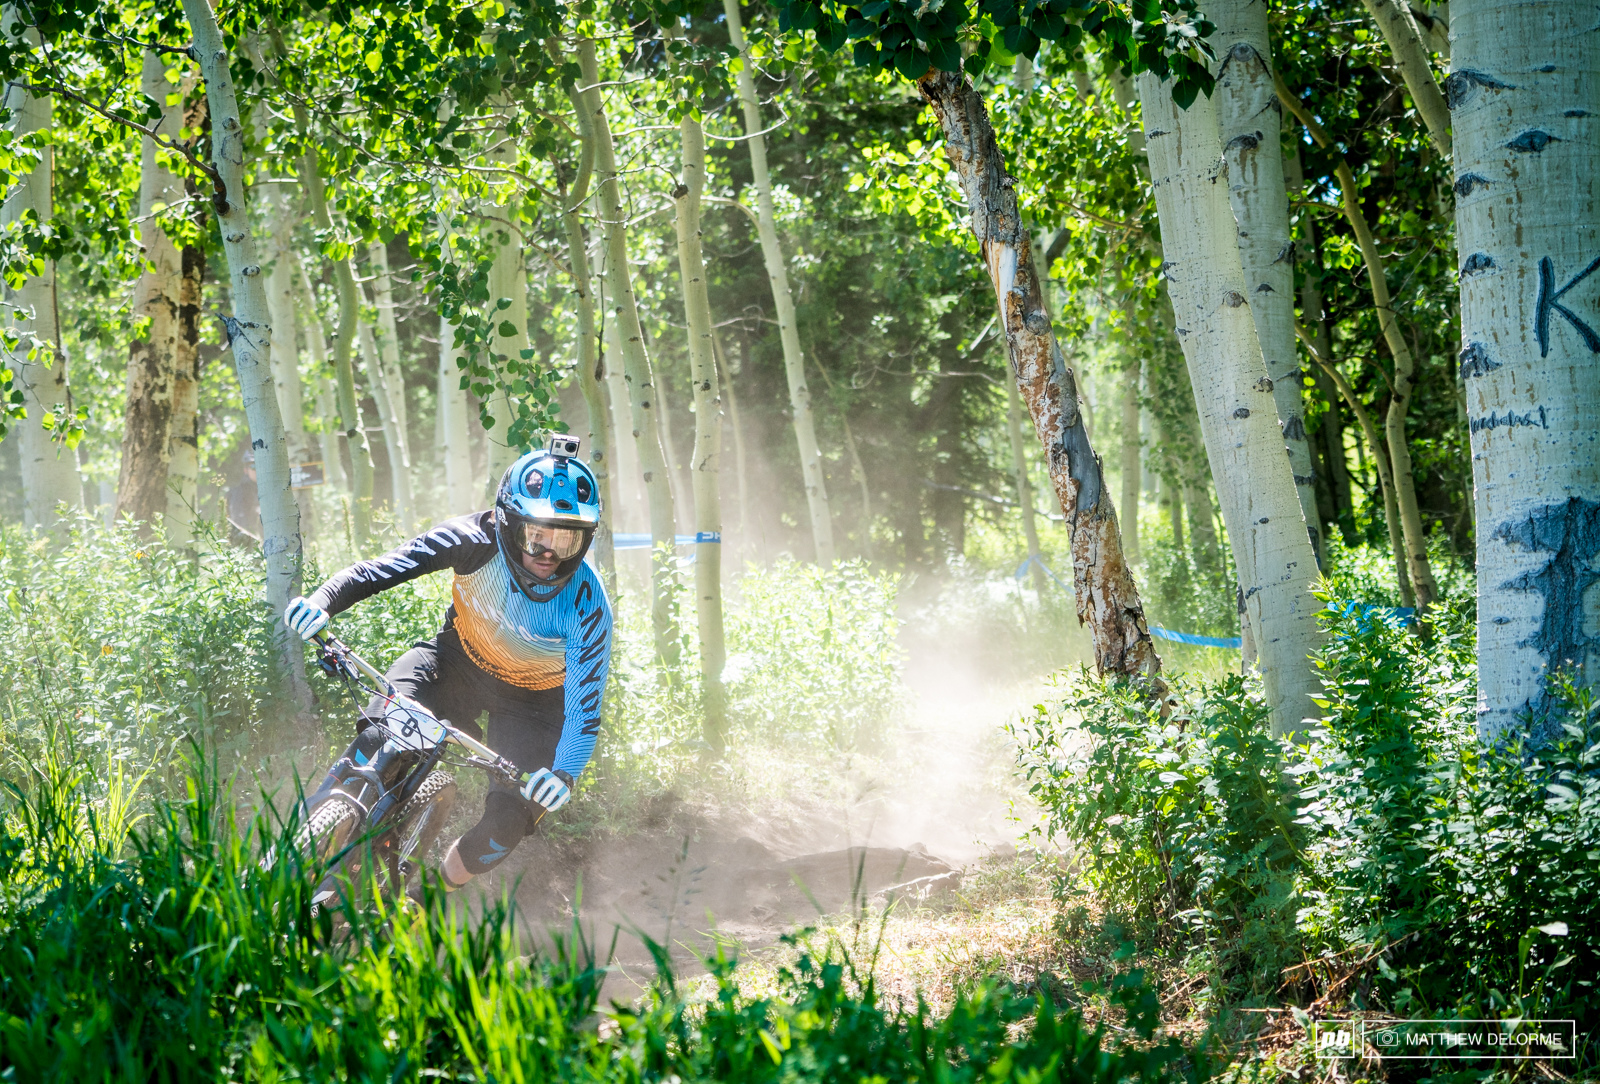 Joe Barnes has been digging plenty of loose corners at home and sliding about on a daily basis. Perhaps that training will pay off here on the loose trails in Aspen.